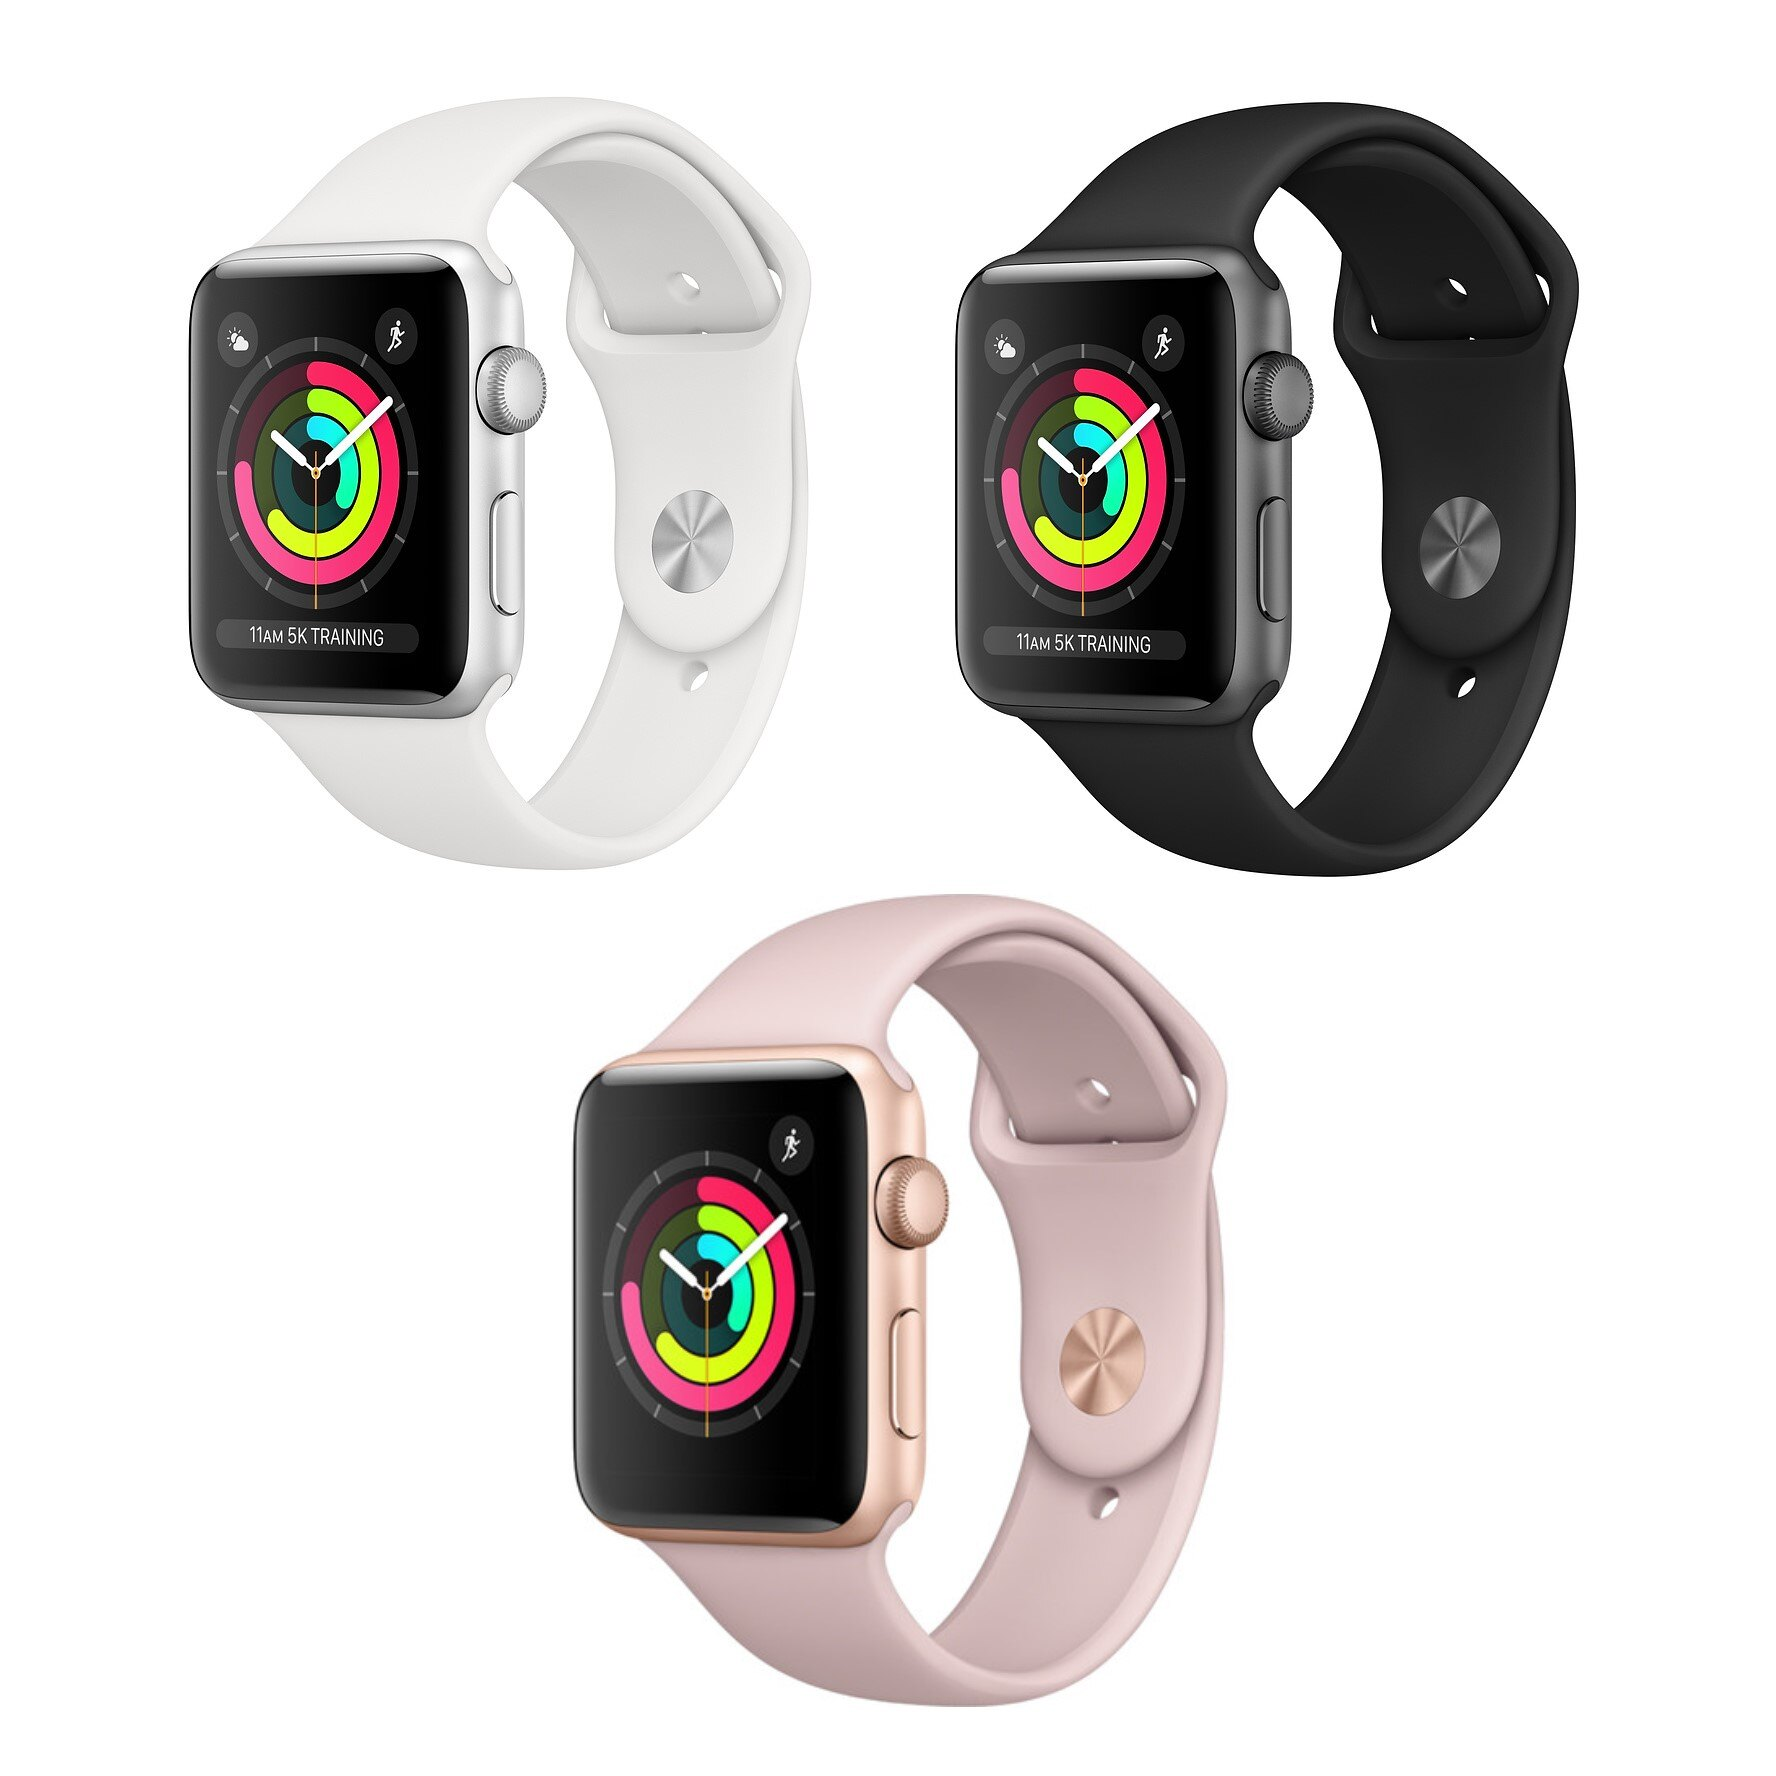 apple-watch-seri-3-99